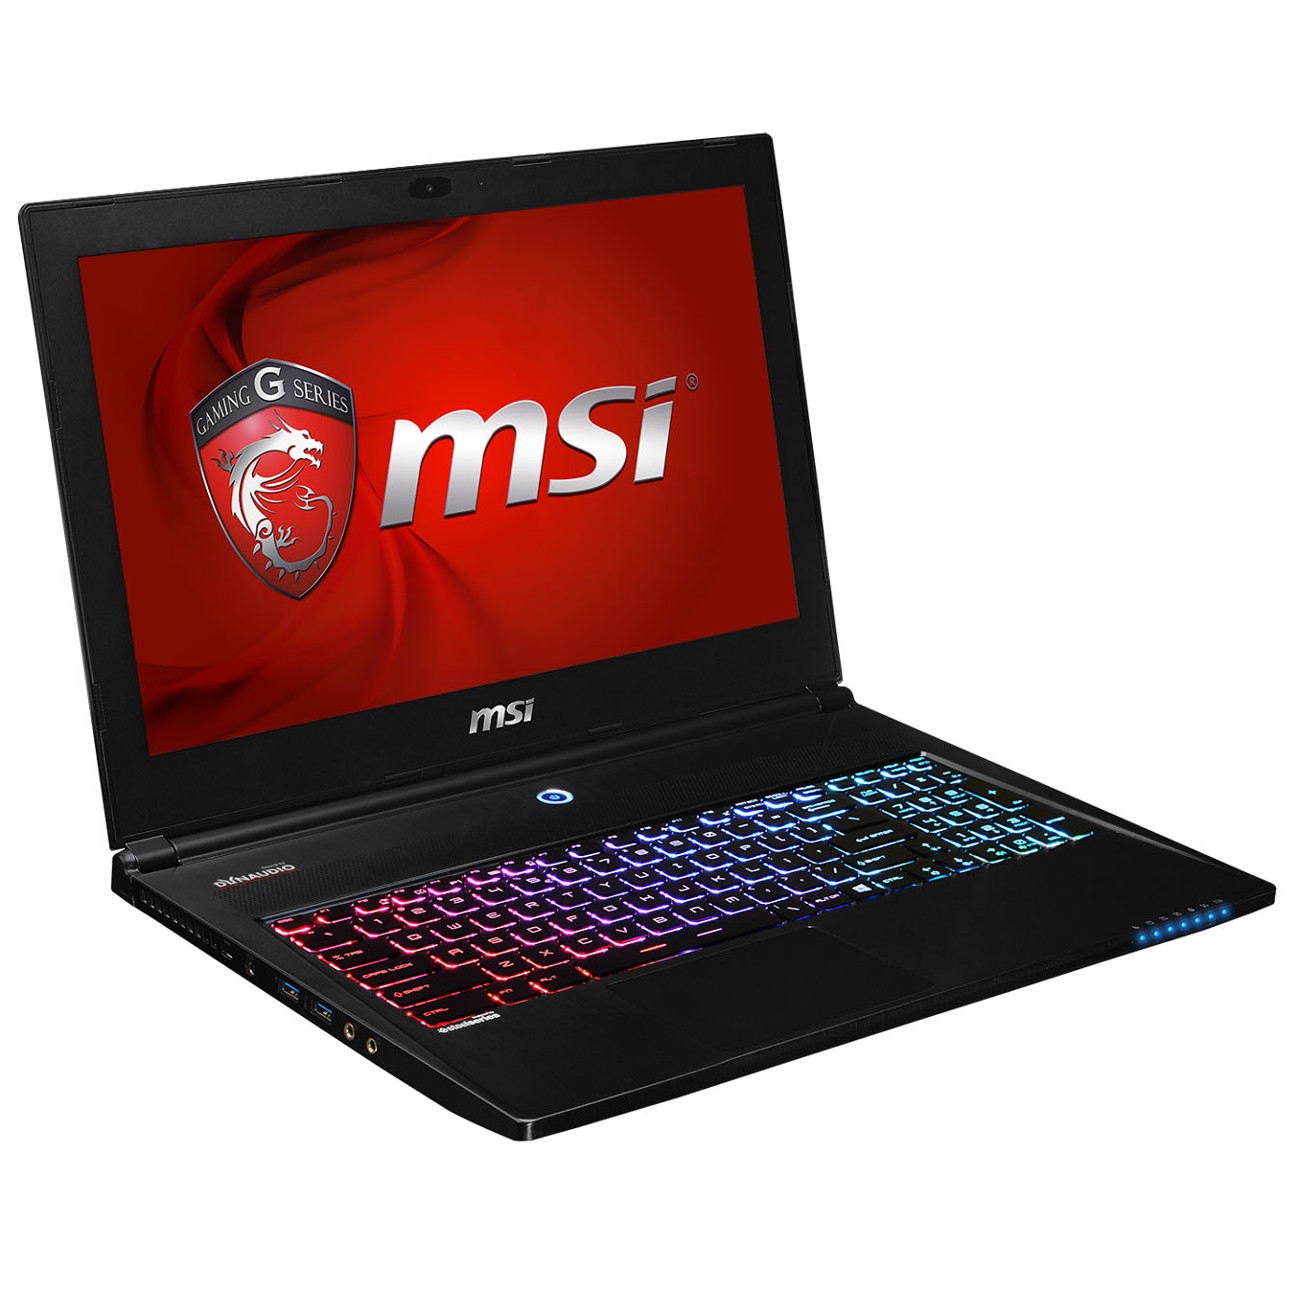 "PC portable MSI GS60 2PE-046FR Ghost Pro Intel Core i7-4700HQ 16 Go SSD 128 Go + HDD 1 To 15.6"" LED NVIDIA GeForce GTX 870M Wi-Fi AC/Bluetooth Webcam Windows 8.1 64 bits (garantie constructeur 1 an)"